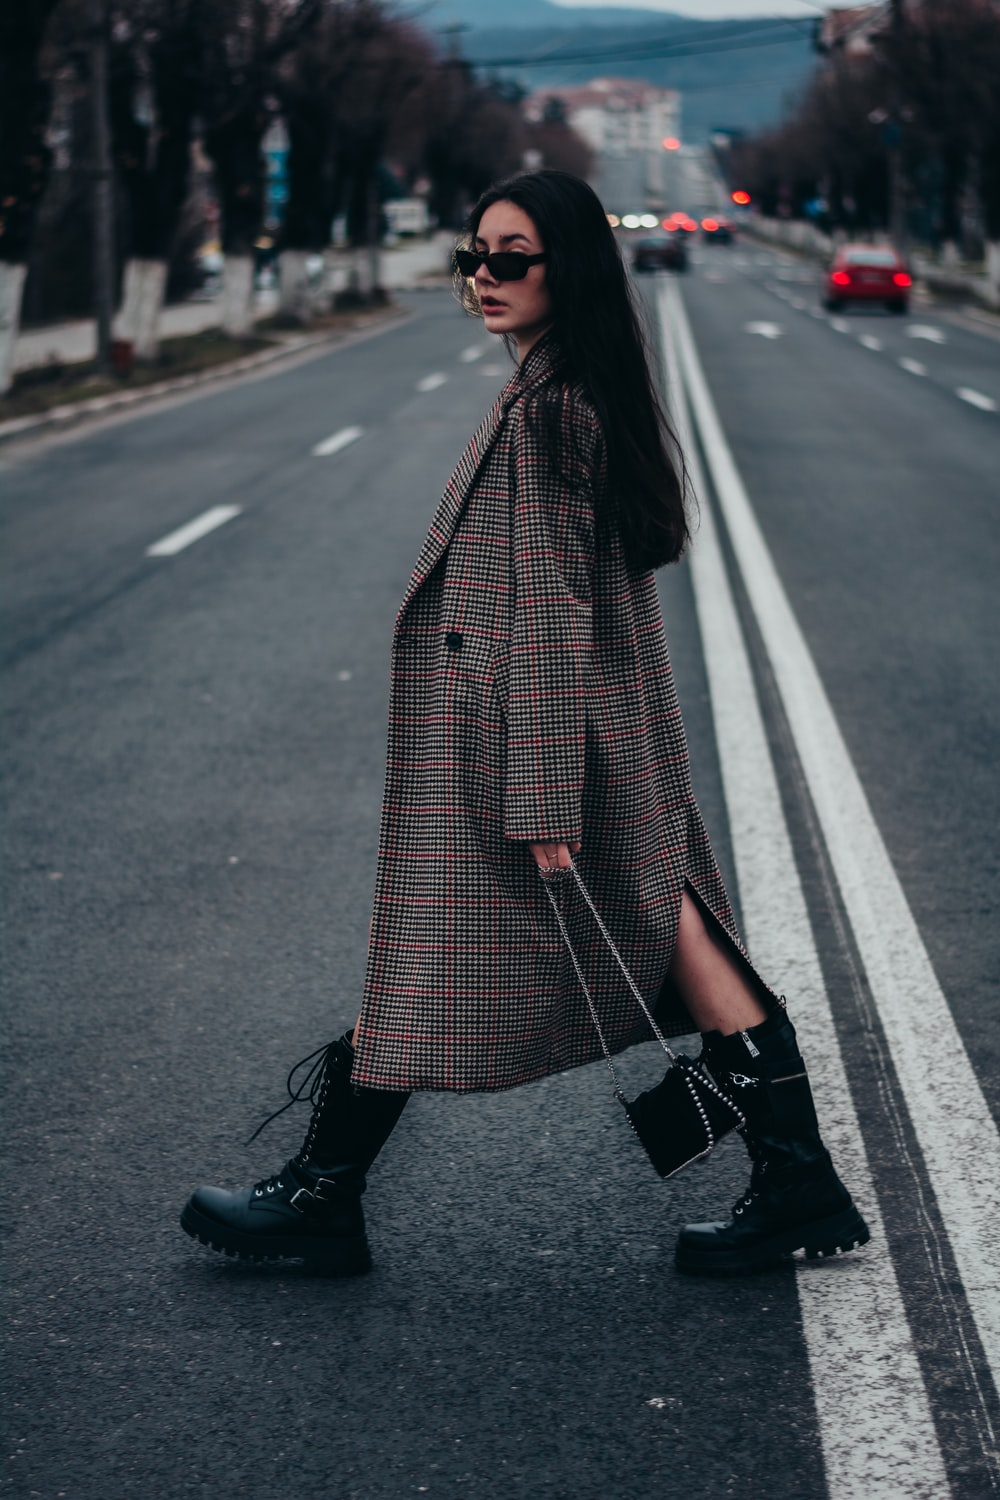 woman in black coat standing on the road